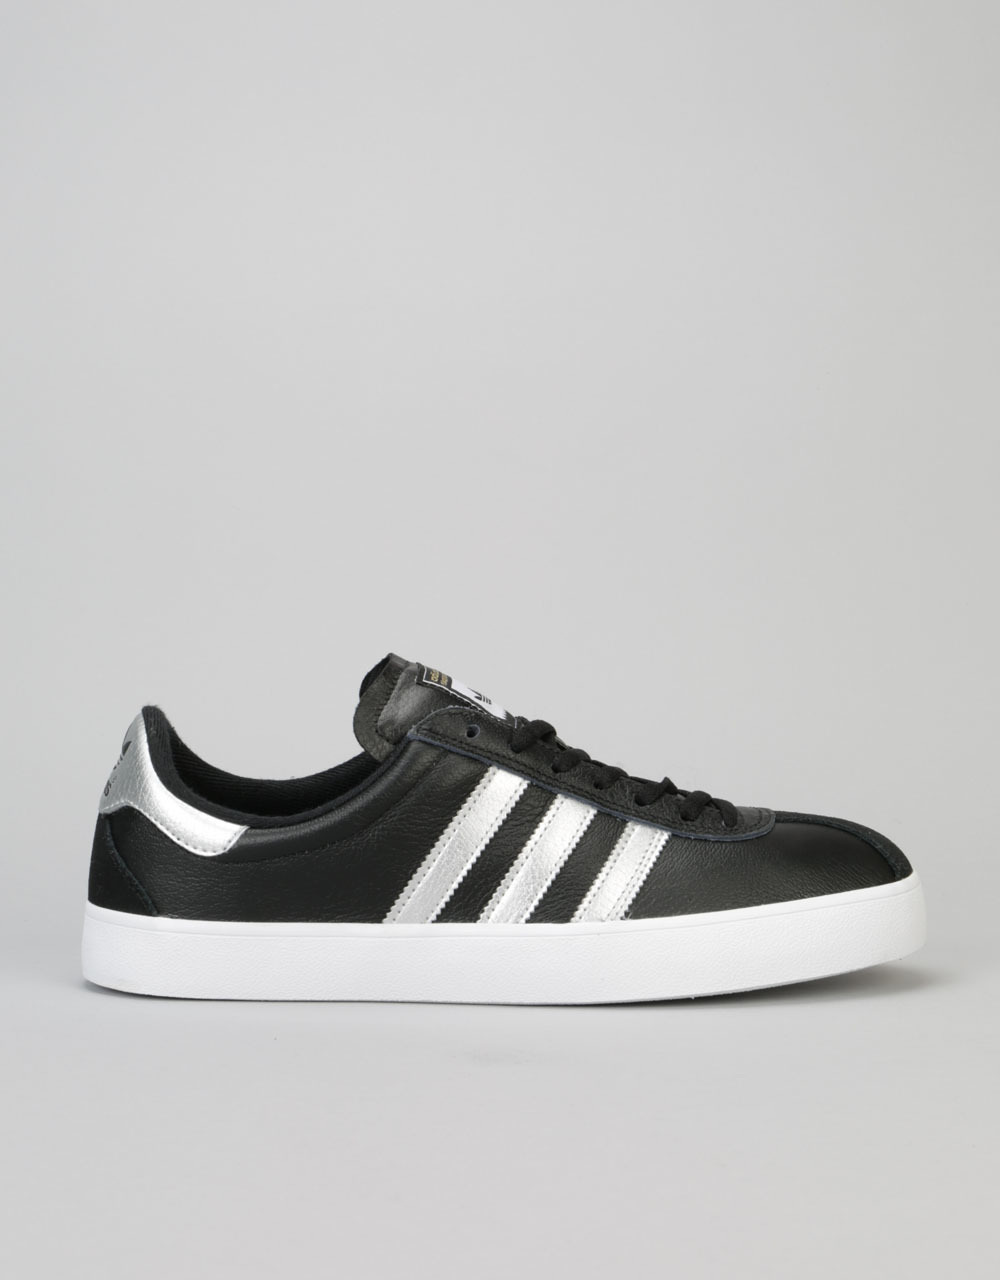 Adidas Skate ADV Skate Shoes - Core Black/Silver Metallic/White | Skate  Shoes | Mens Skateboarding Trainers & Footwear | Route One